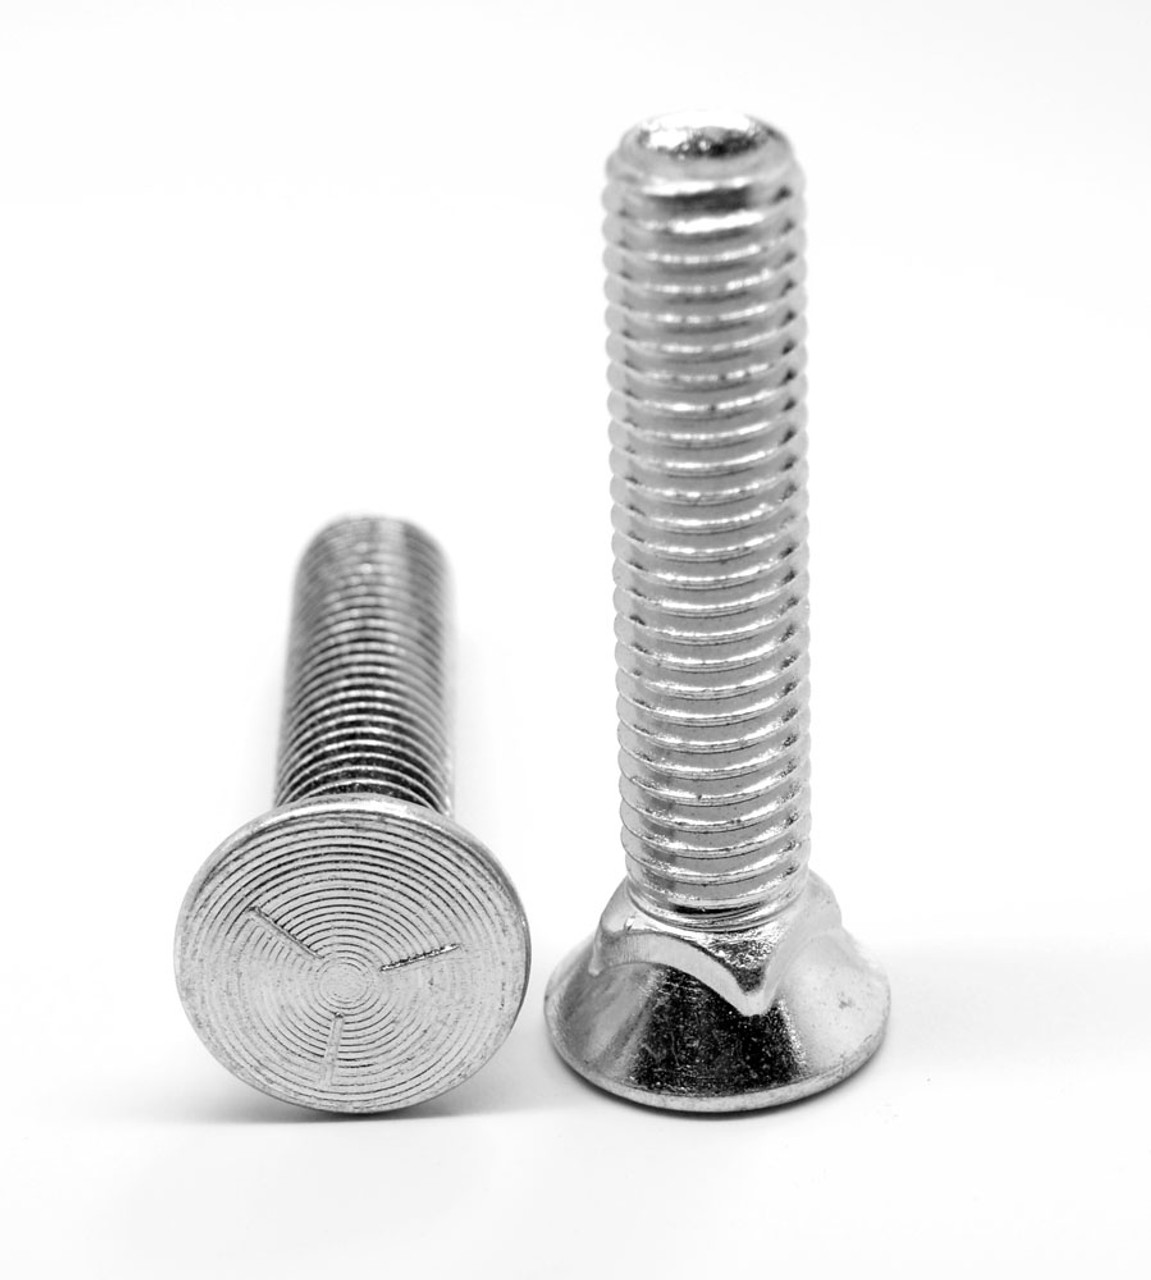 #6-20 Thread Size Phillips Drive Zinc Plated Steel Self-Drilling Screw 82 degrees Flat Head Pack of 100 #2 Drill Point 1-5//8 inches Length